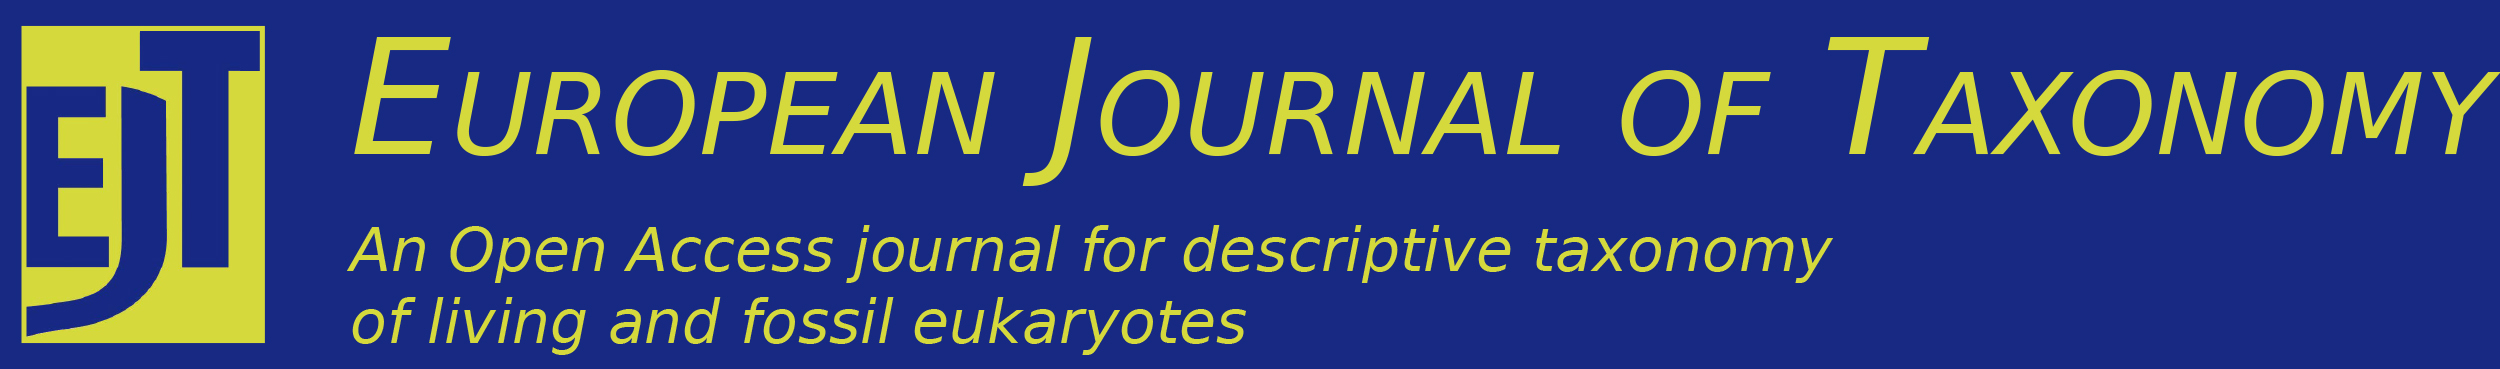 Logo of European Journal of Taxonomy